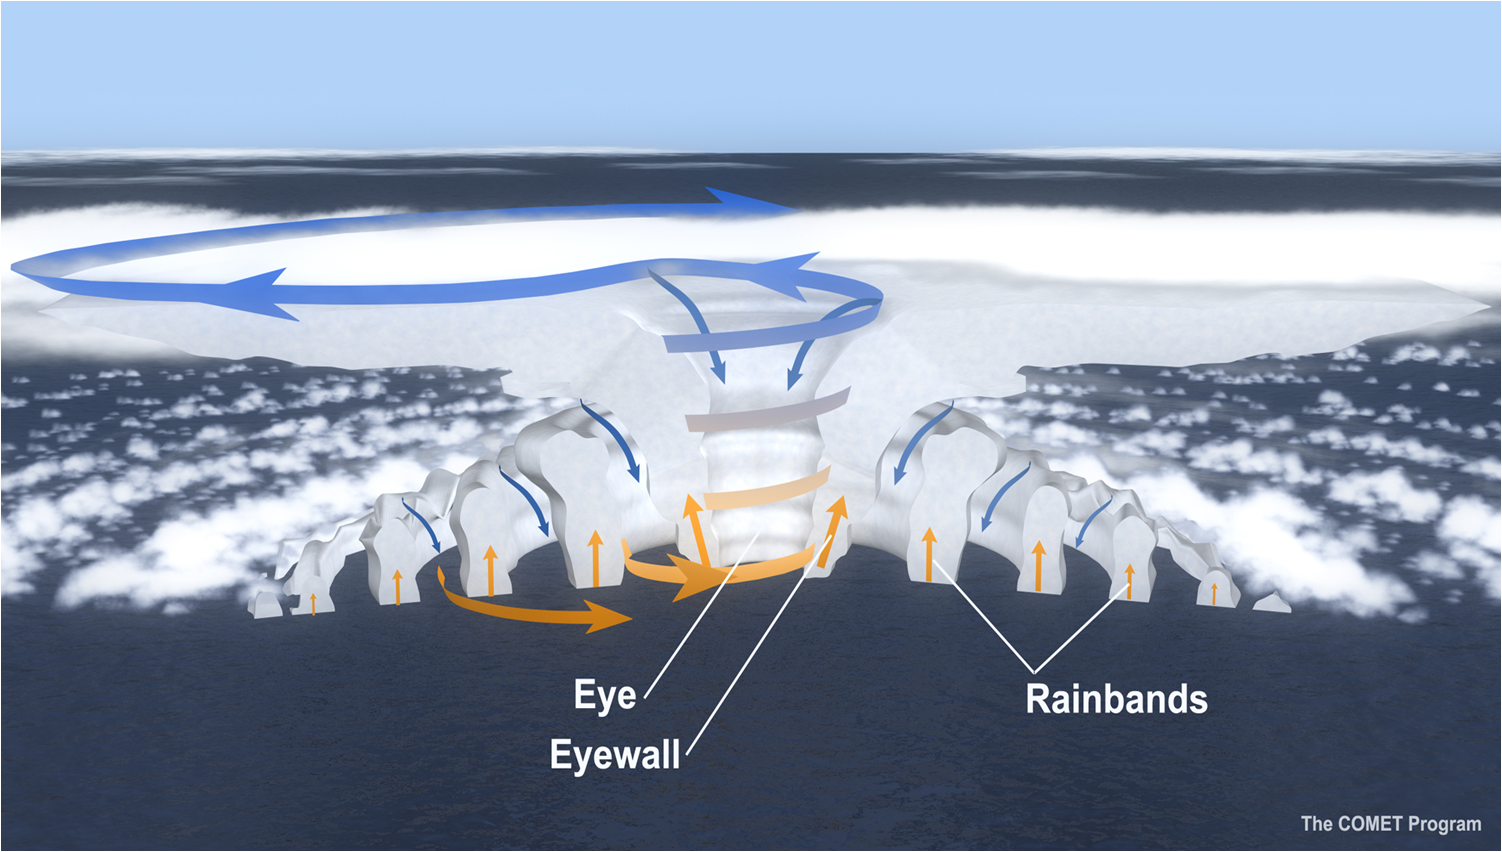 The cross-section of a hurricane, with arrows showing the direction of wind. (hurricanescience.org)